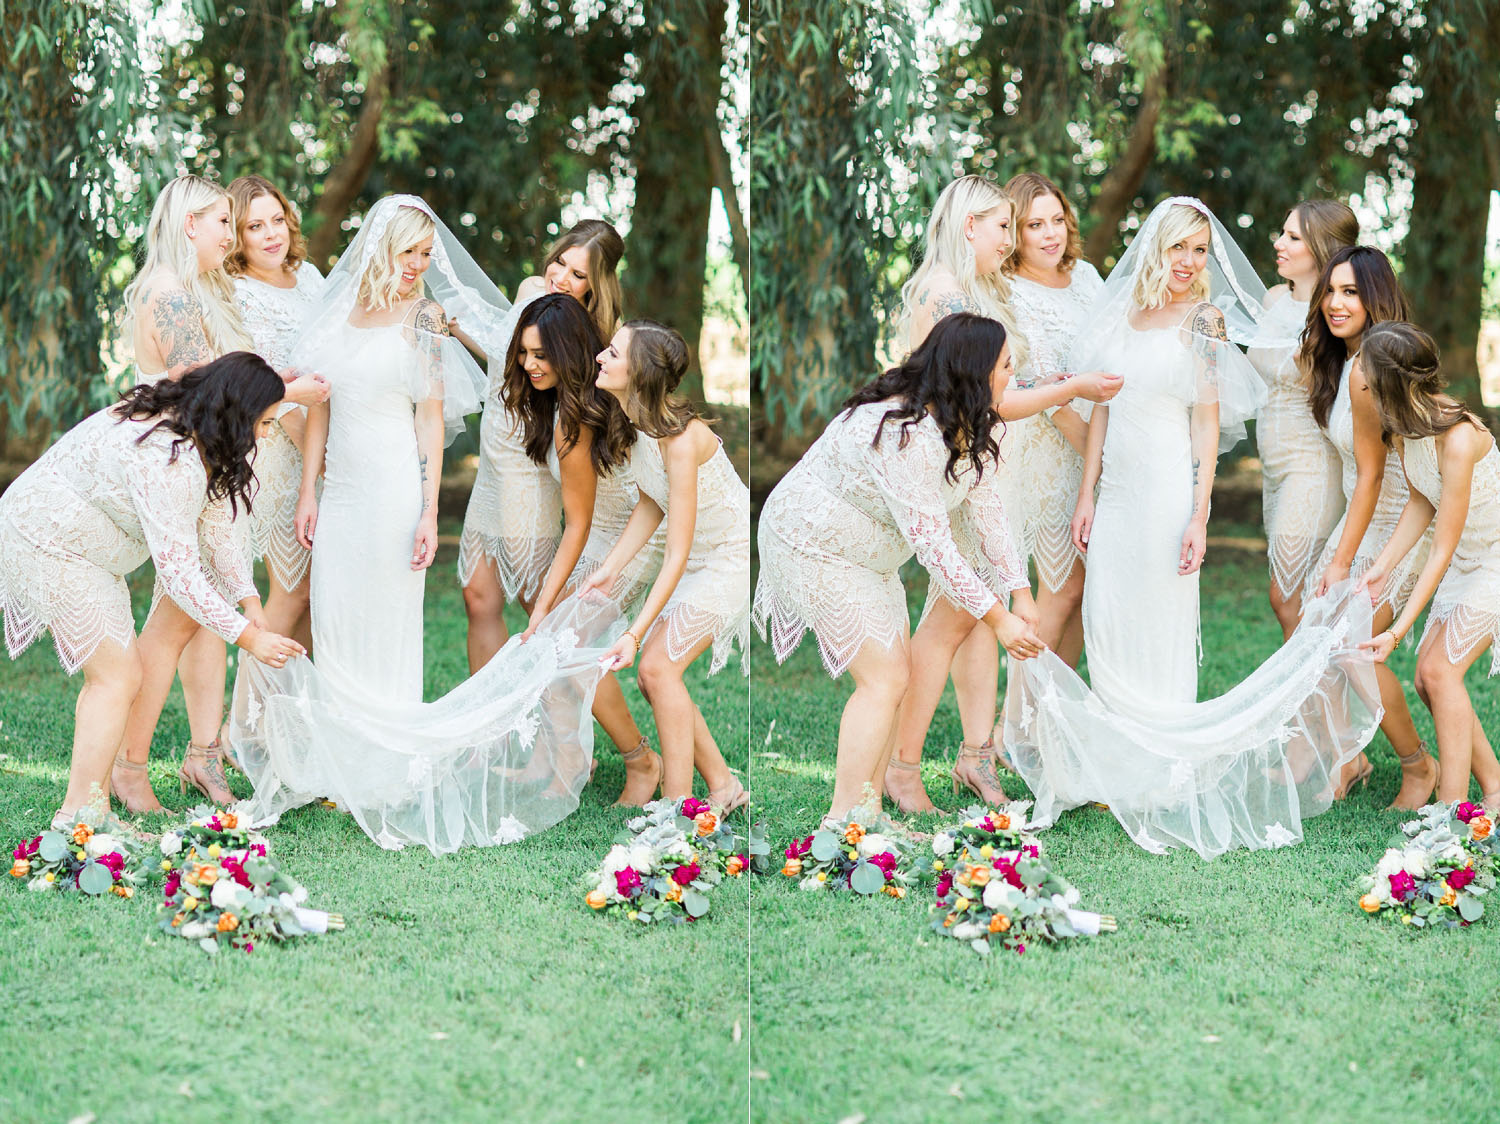 The Photege - Elegant Boho Wedding on Suburu Farm in Bakersfield California- Cassie and Darin Buoni-2989